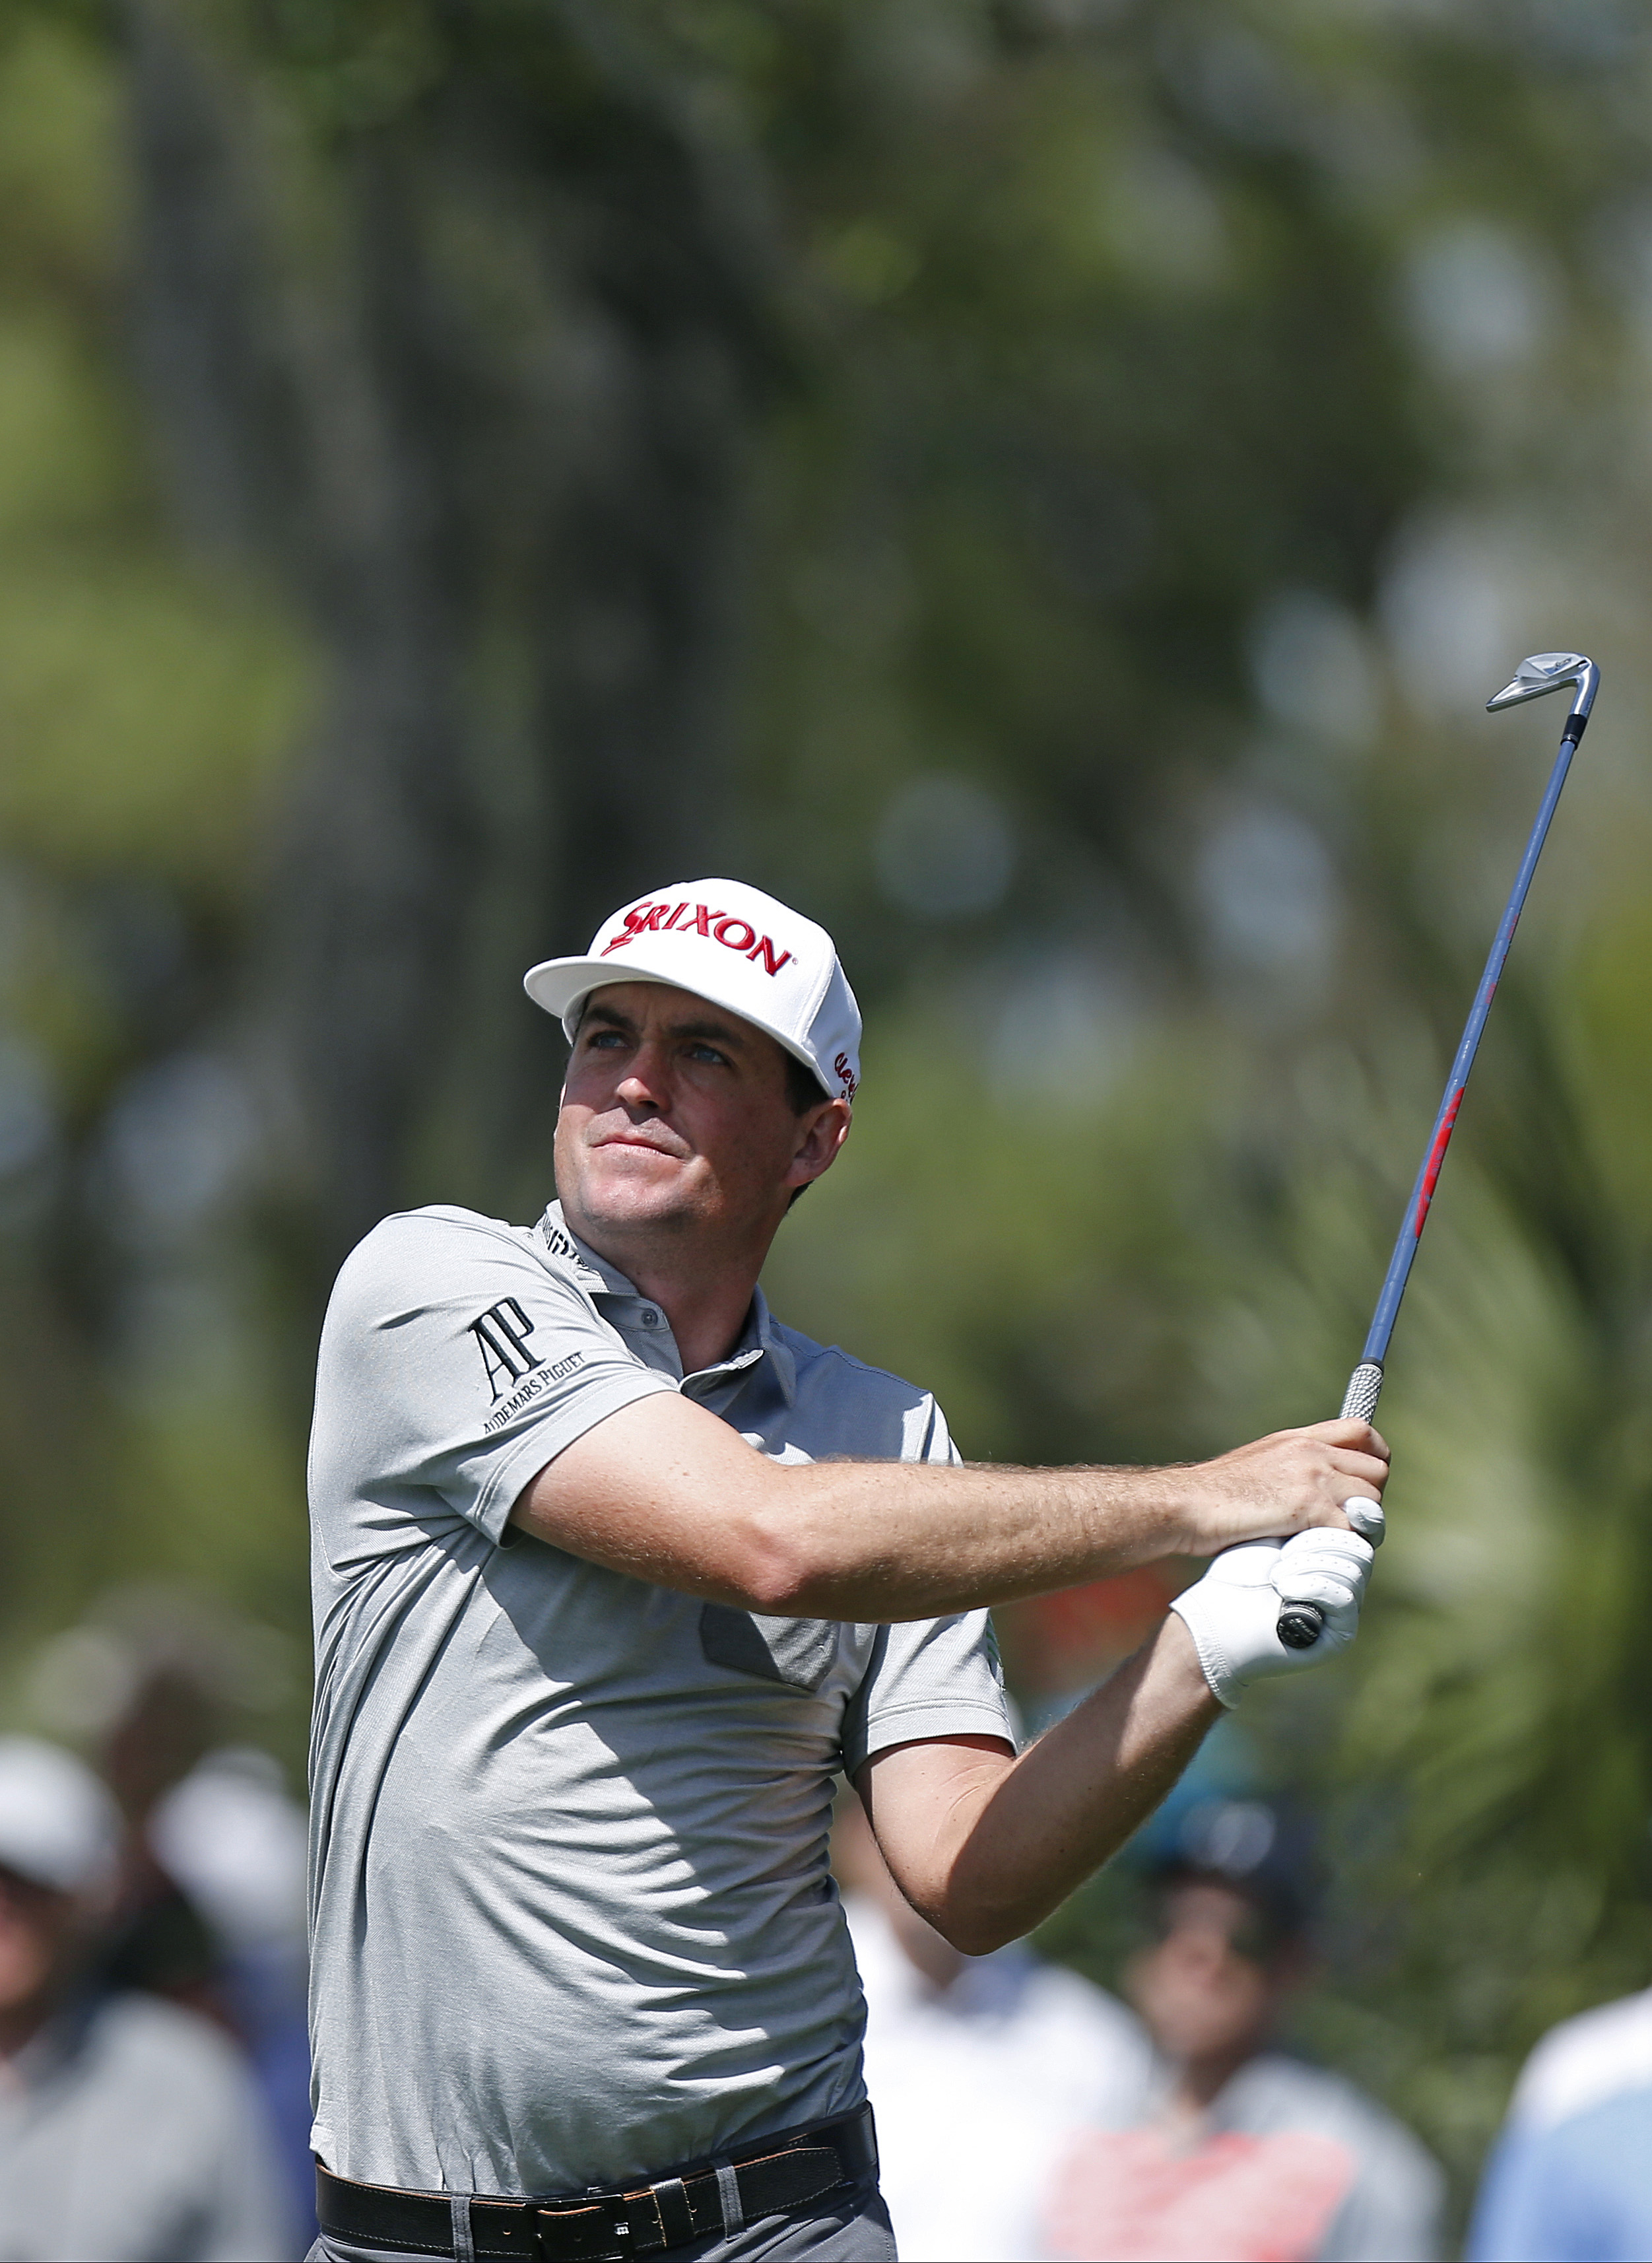 Keegan Bradley hits his tee shot on the eighth hole during the first round of the Valspar Championship golf tournament Thursday, March 10, 2016, in Palm Harbor, Fla. (AP Photo/Brian Blanco)